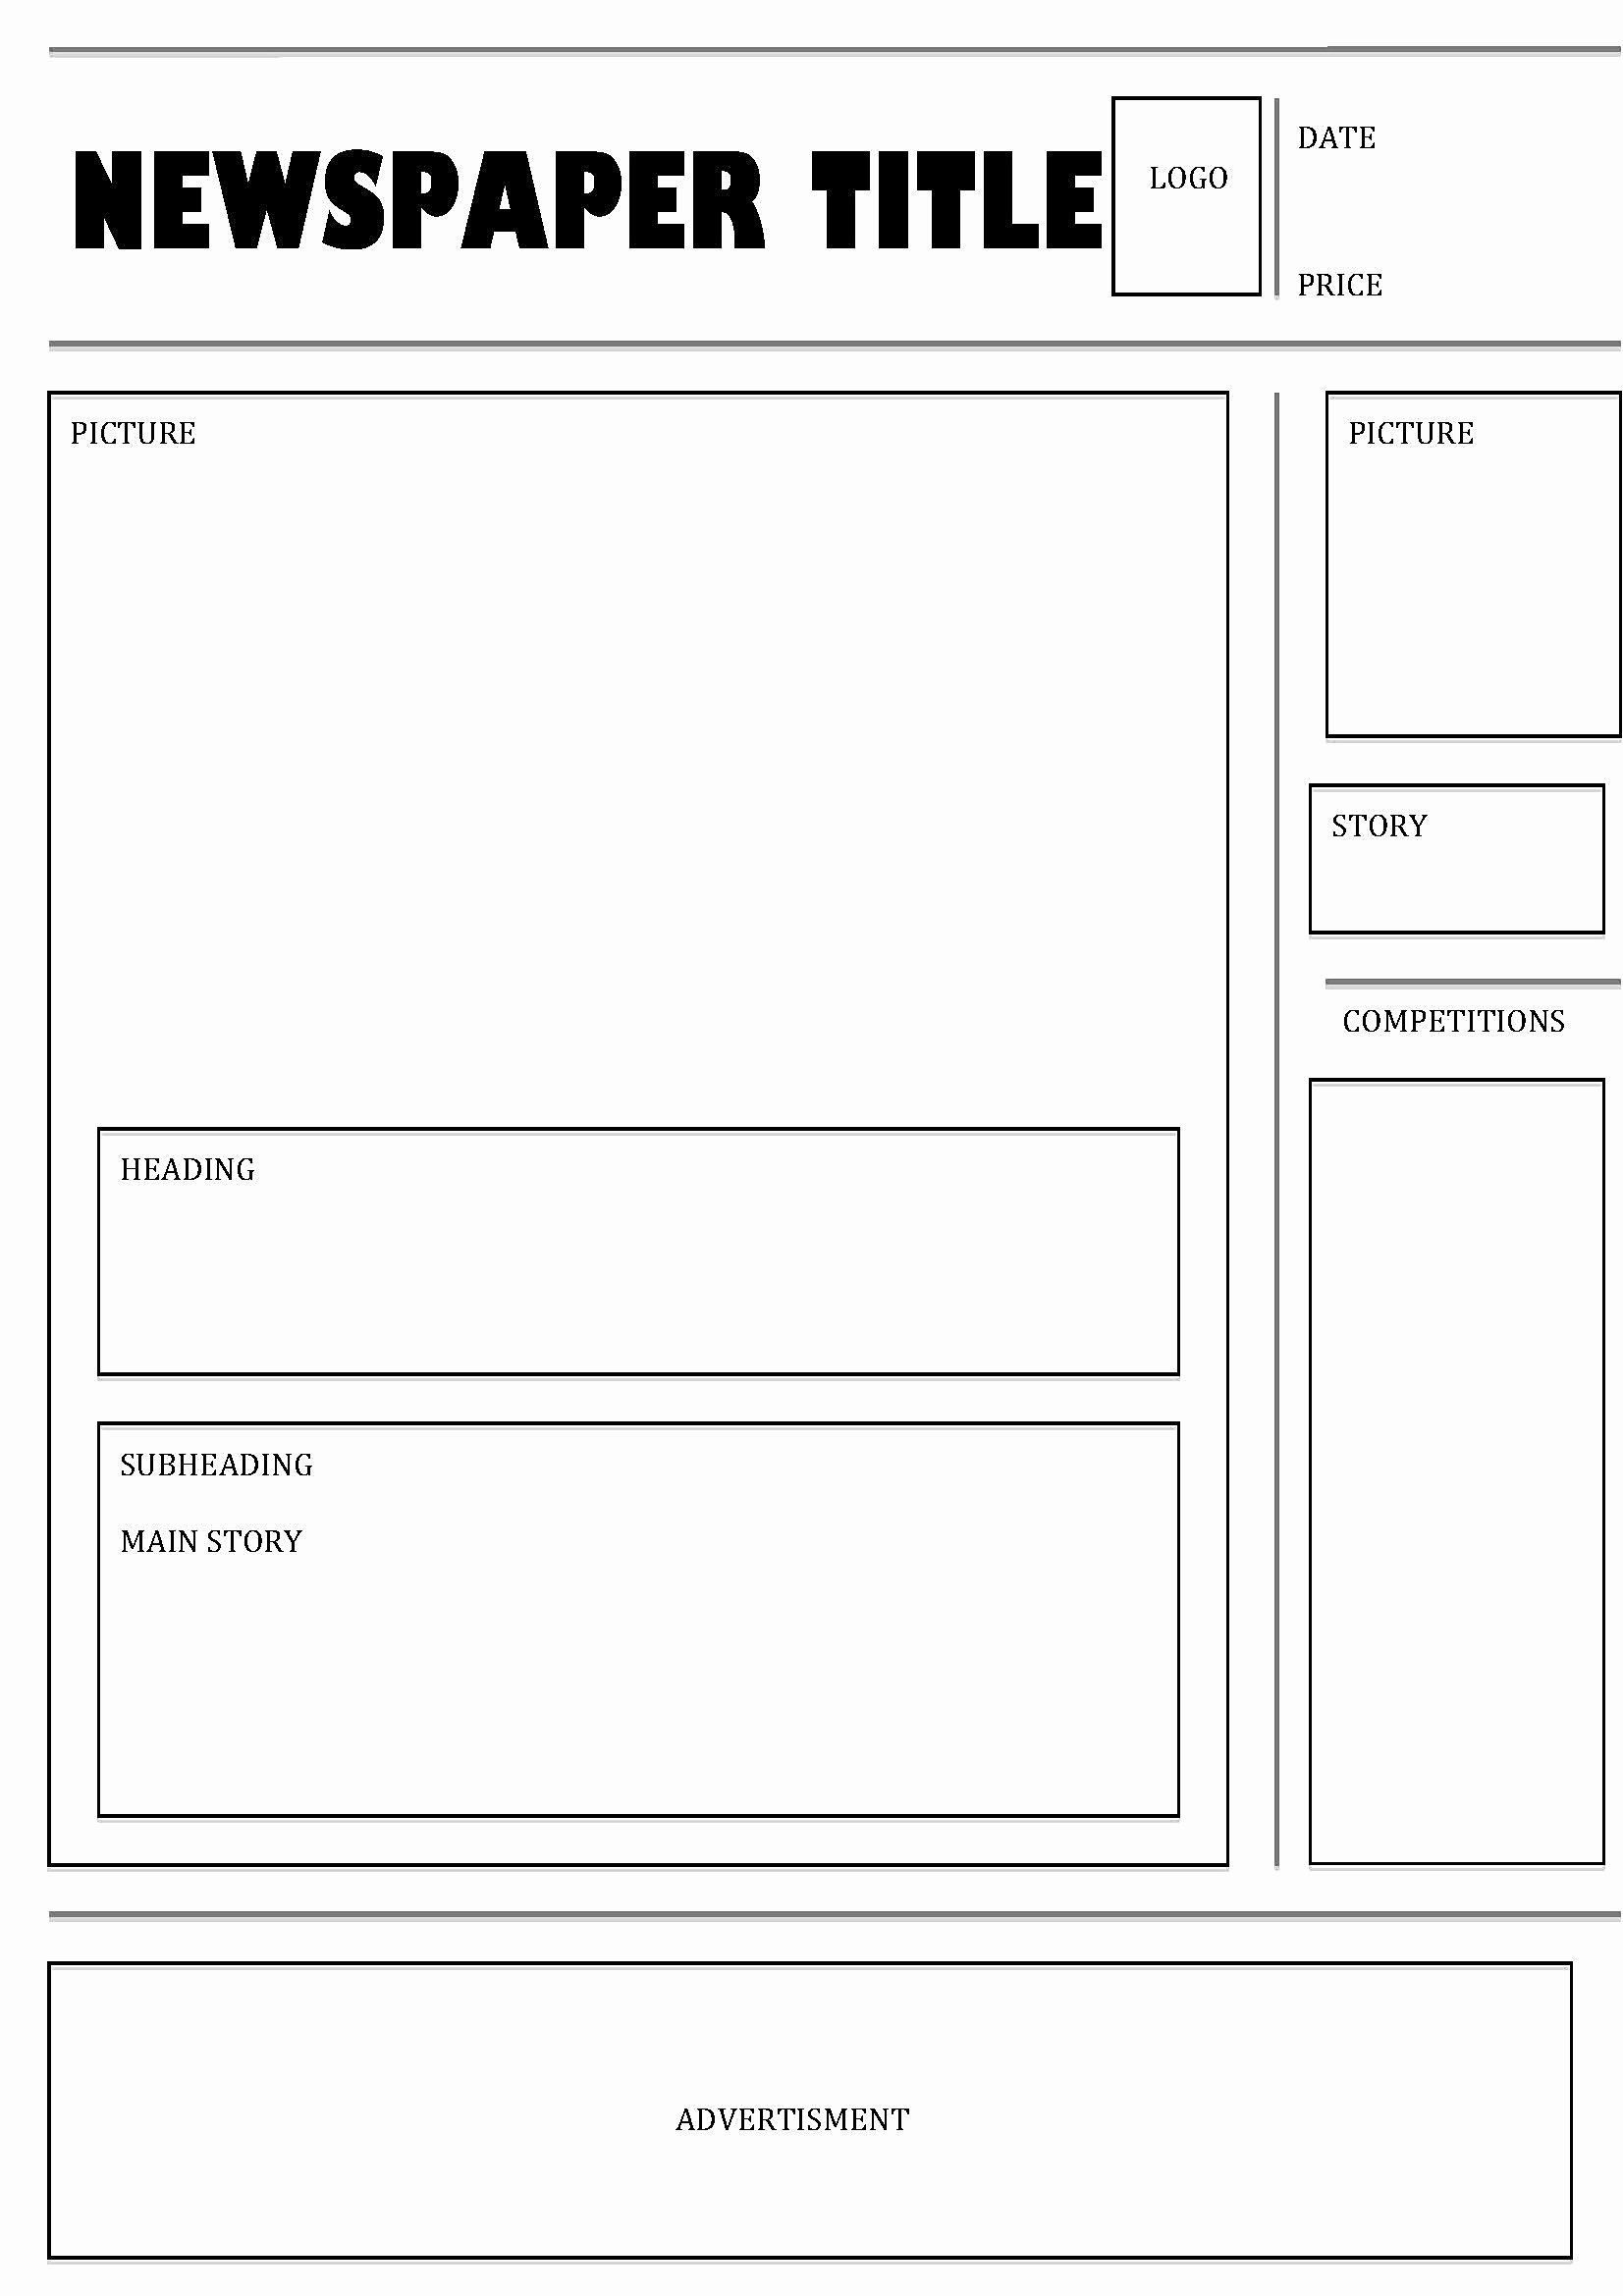 Blank Bank Statement Template In 2020 Newspaper Template